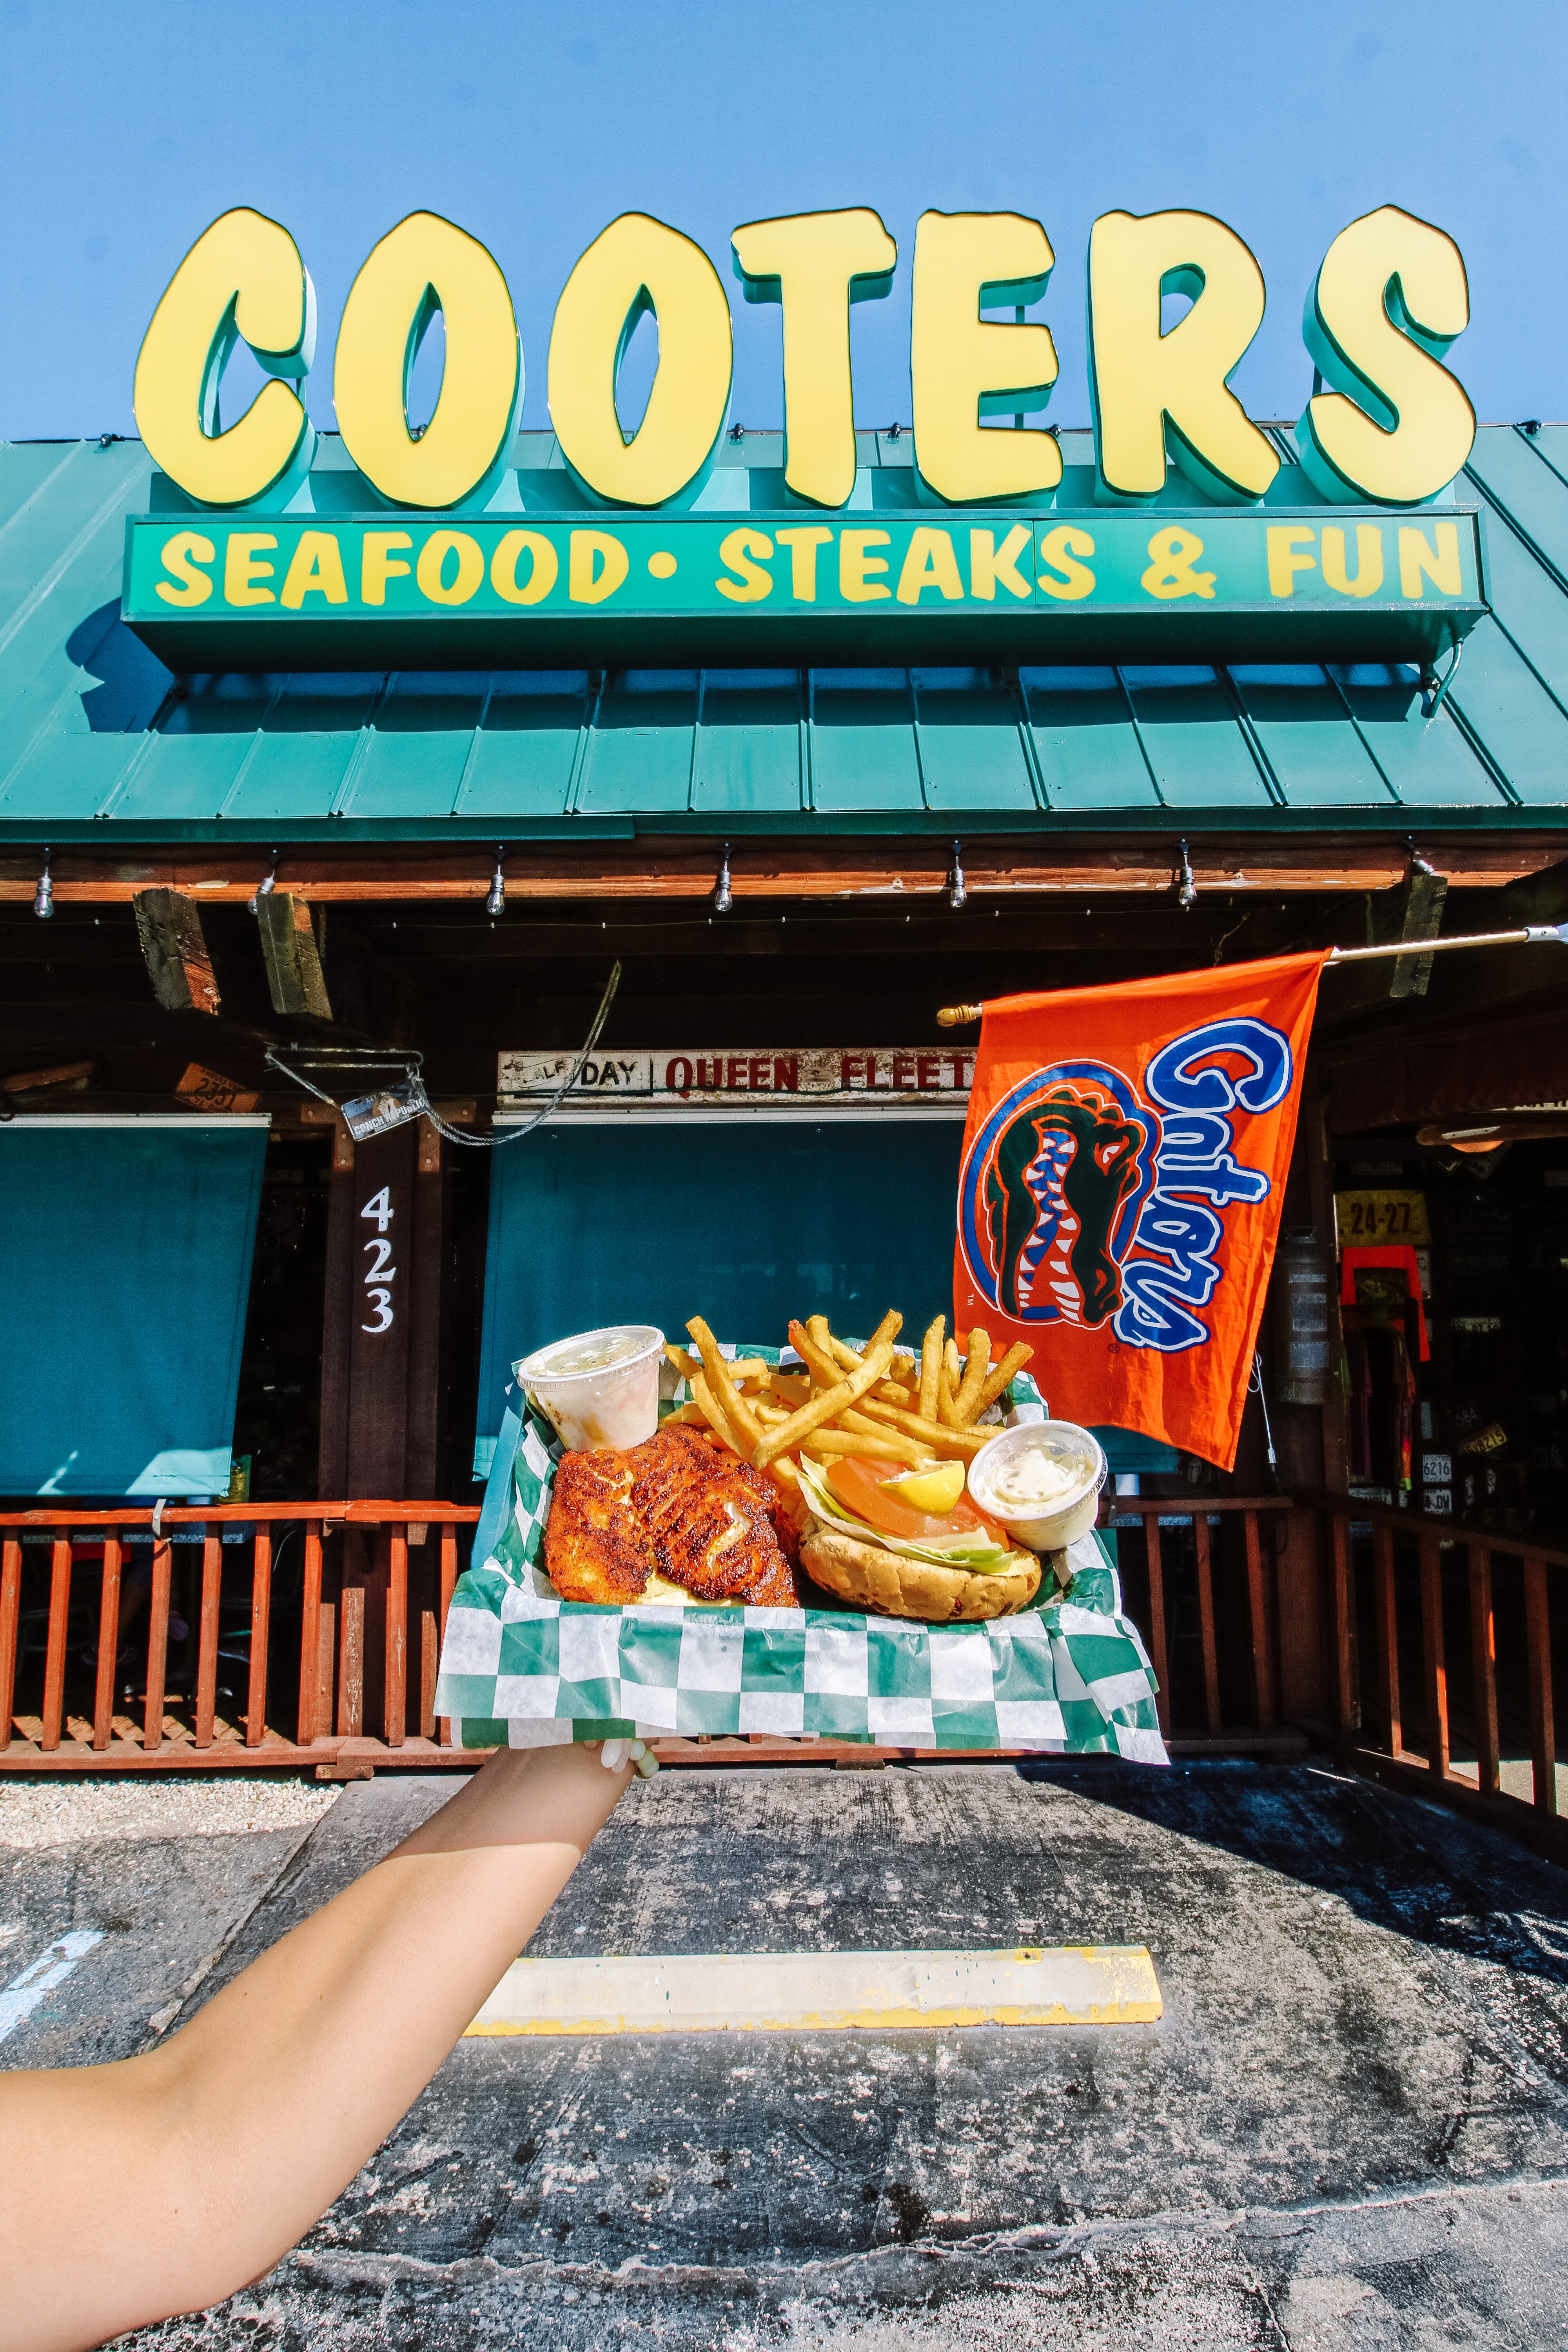 A review of Cooters Restaurant and Bar on Clearwater Beach in Florida